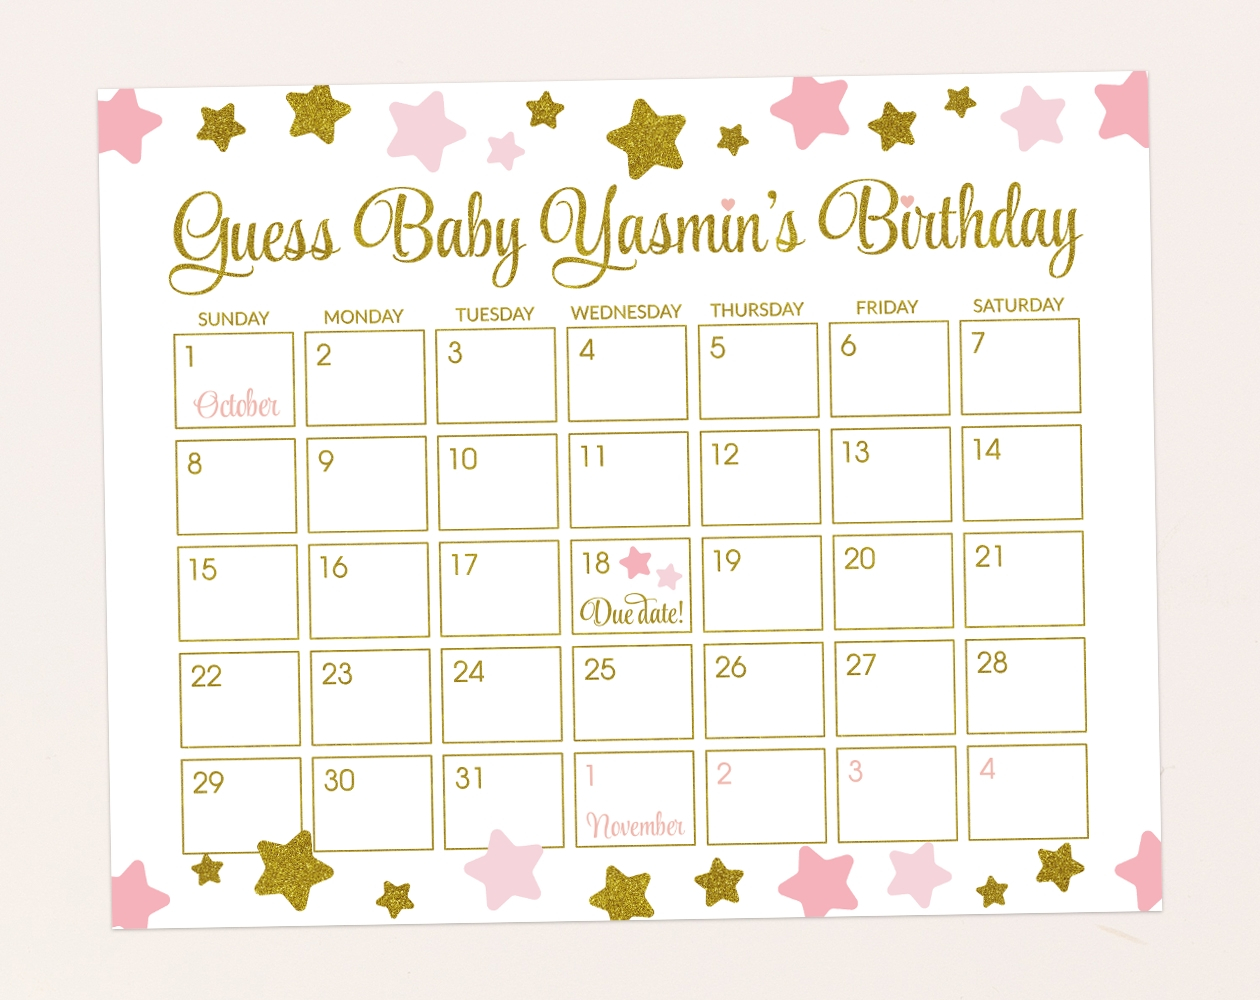 Guess The Date Babyparty | Calendar Template 2020 Baby Date/Time Guessing Games Verbiage